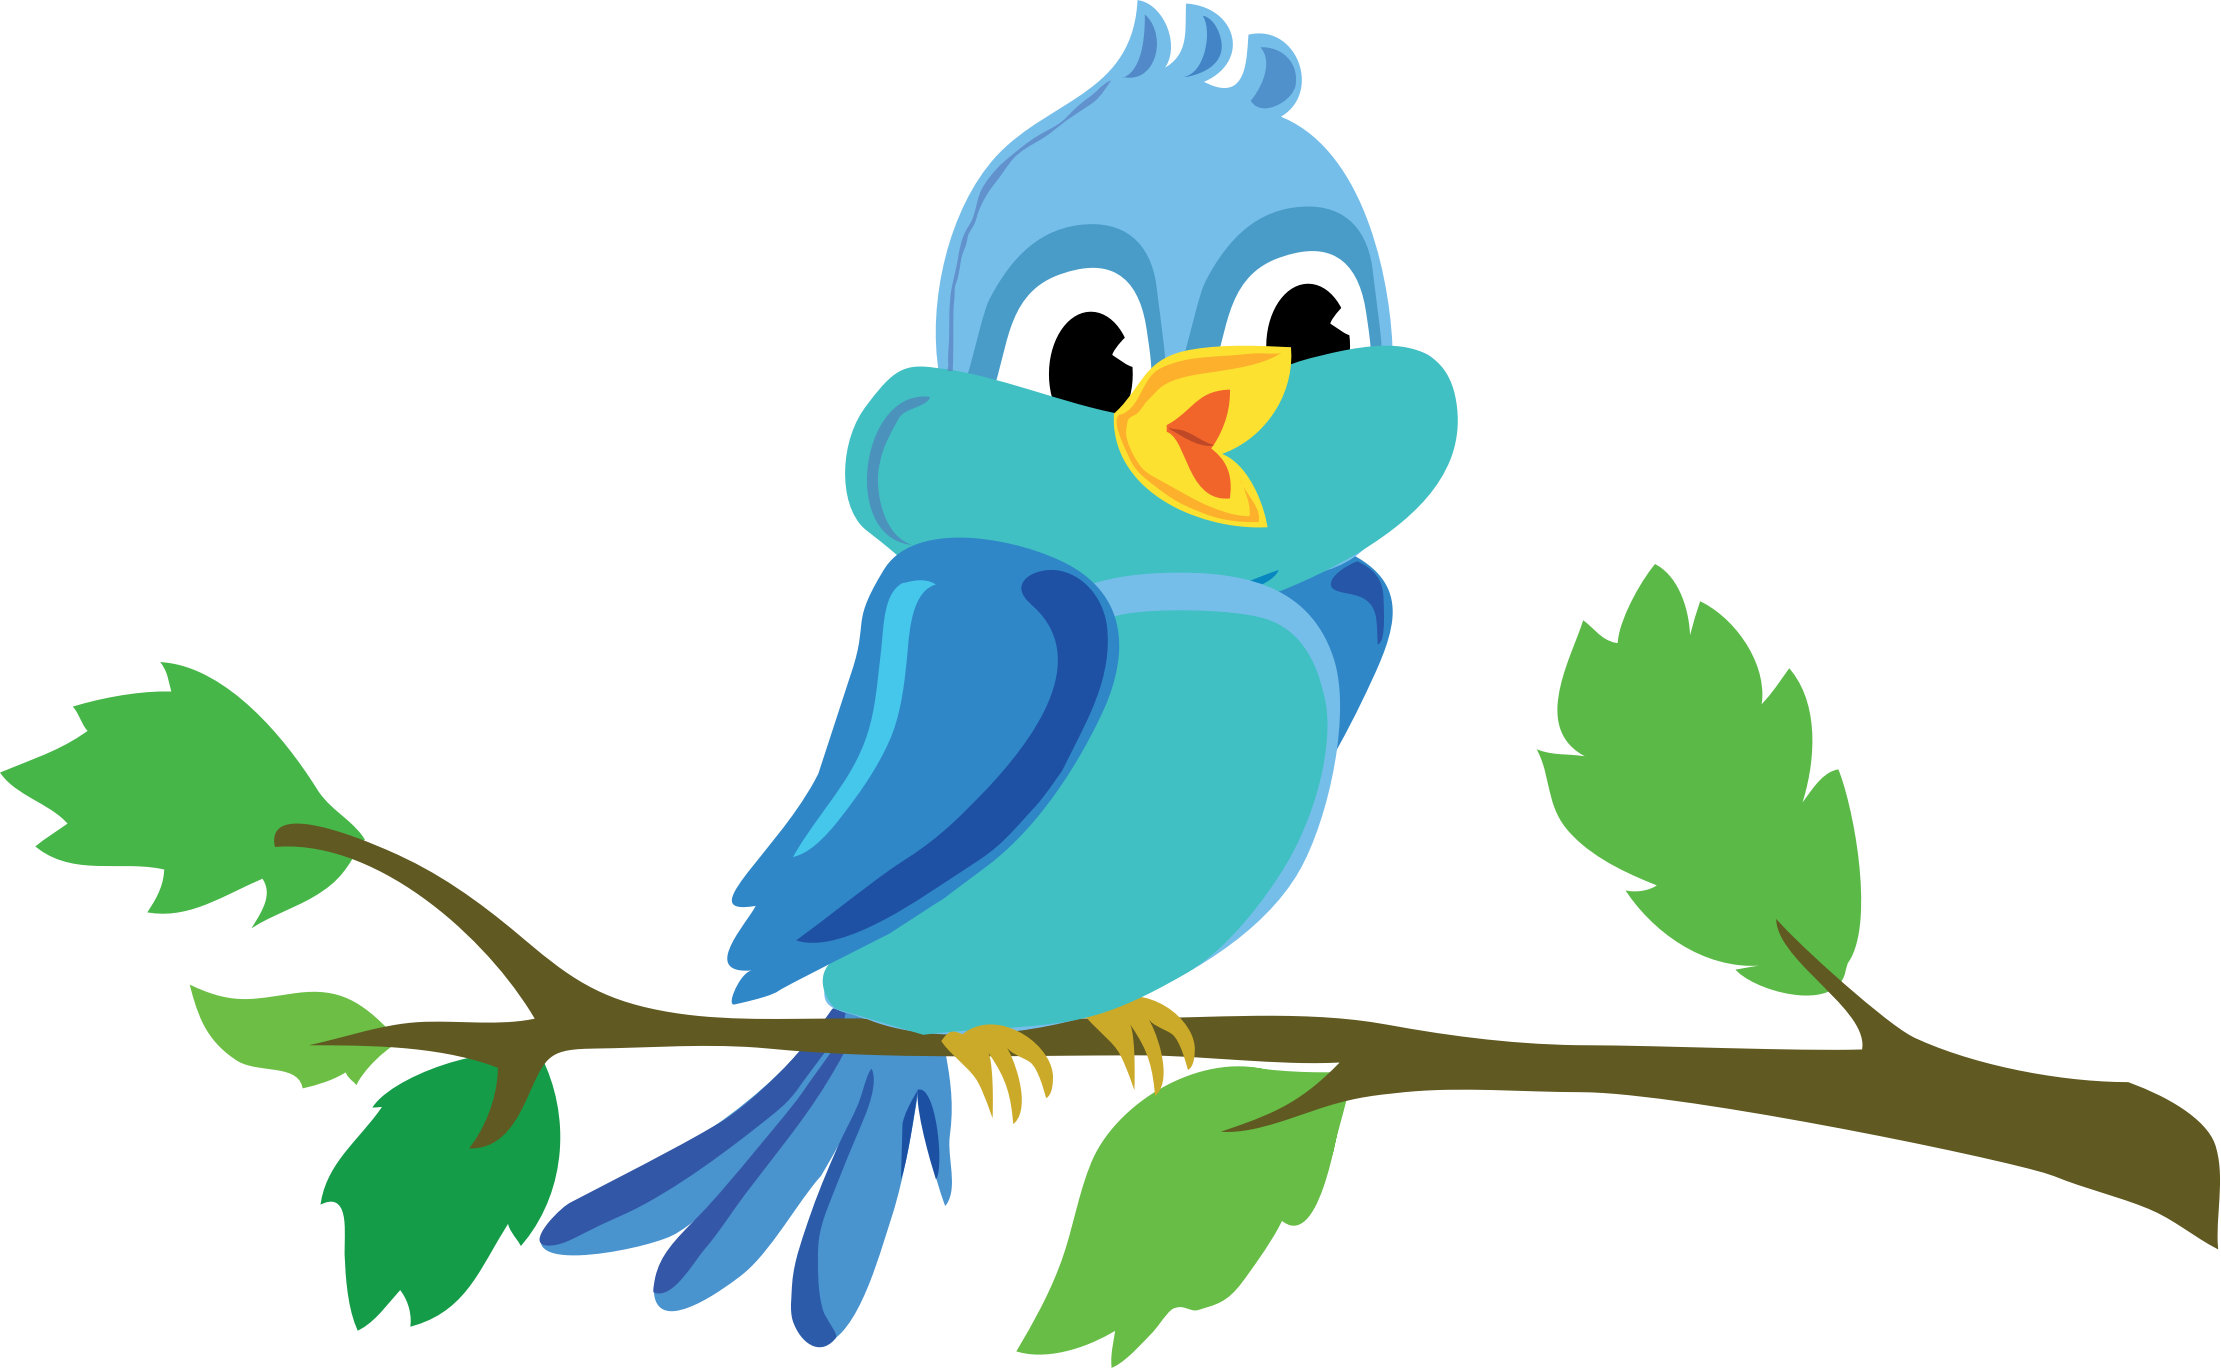 Love at getdrawings com. Nest clipart blue bird